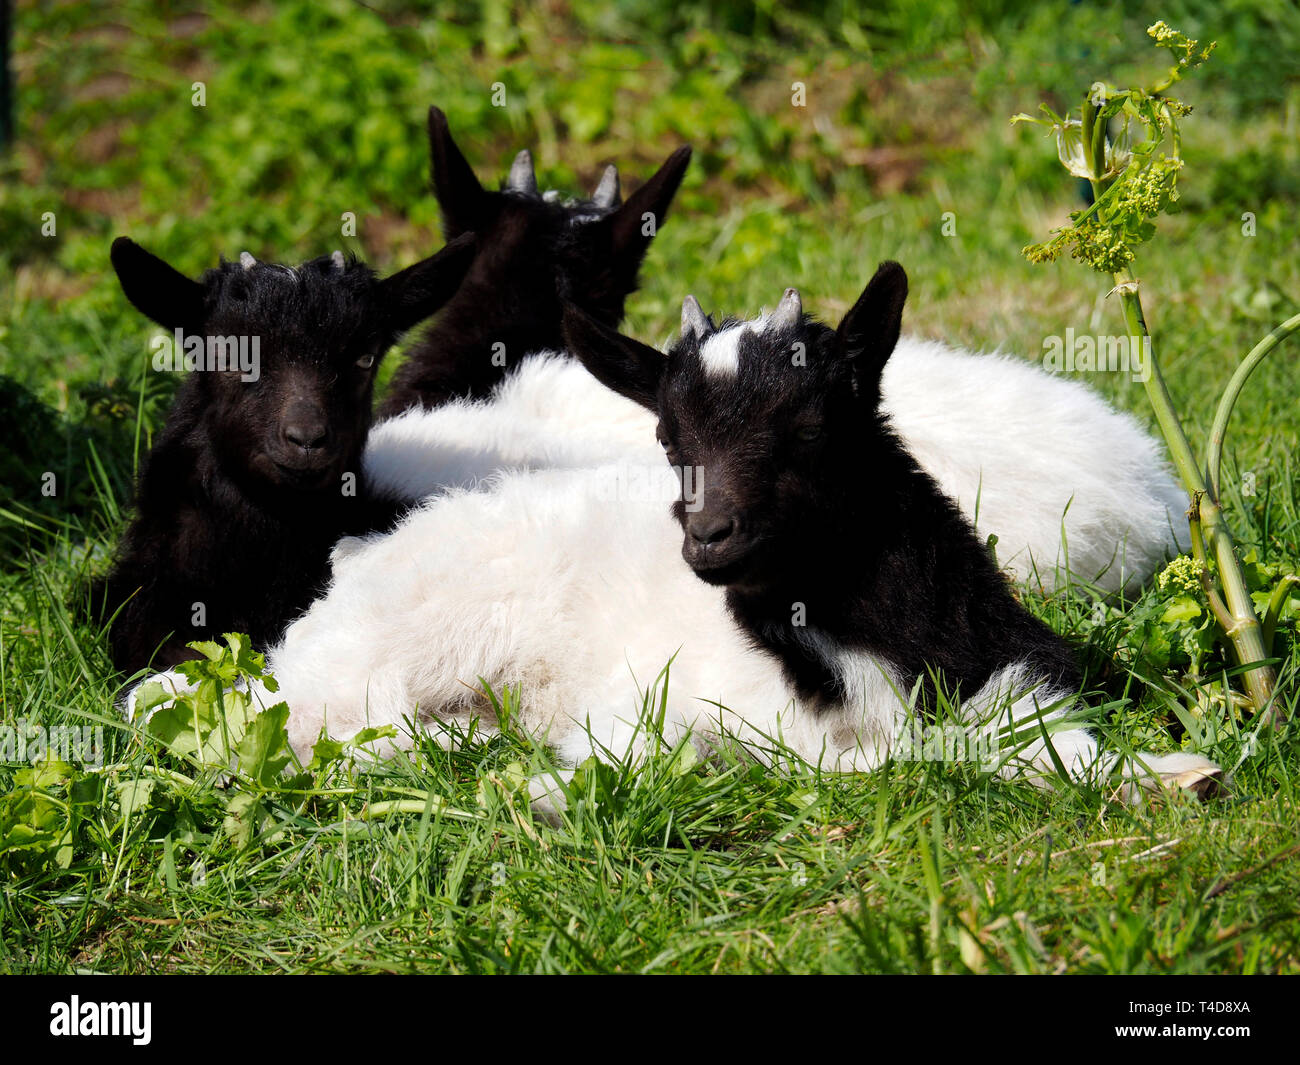 Black and white Bagot goat with kids inn a grassy paddock. The nanny goat has full horns and the young kids show small horn buds. with full horns. Stock Photo